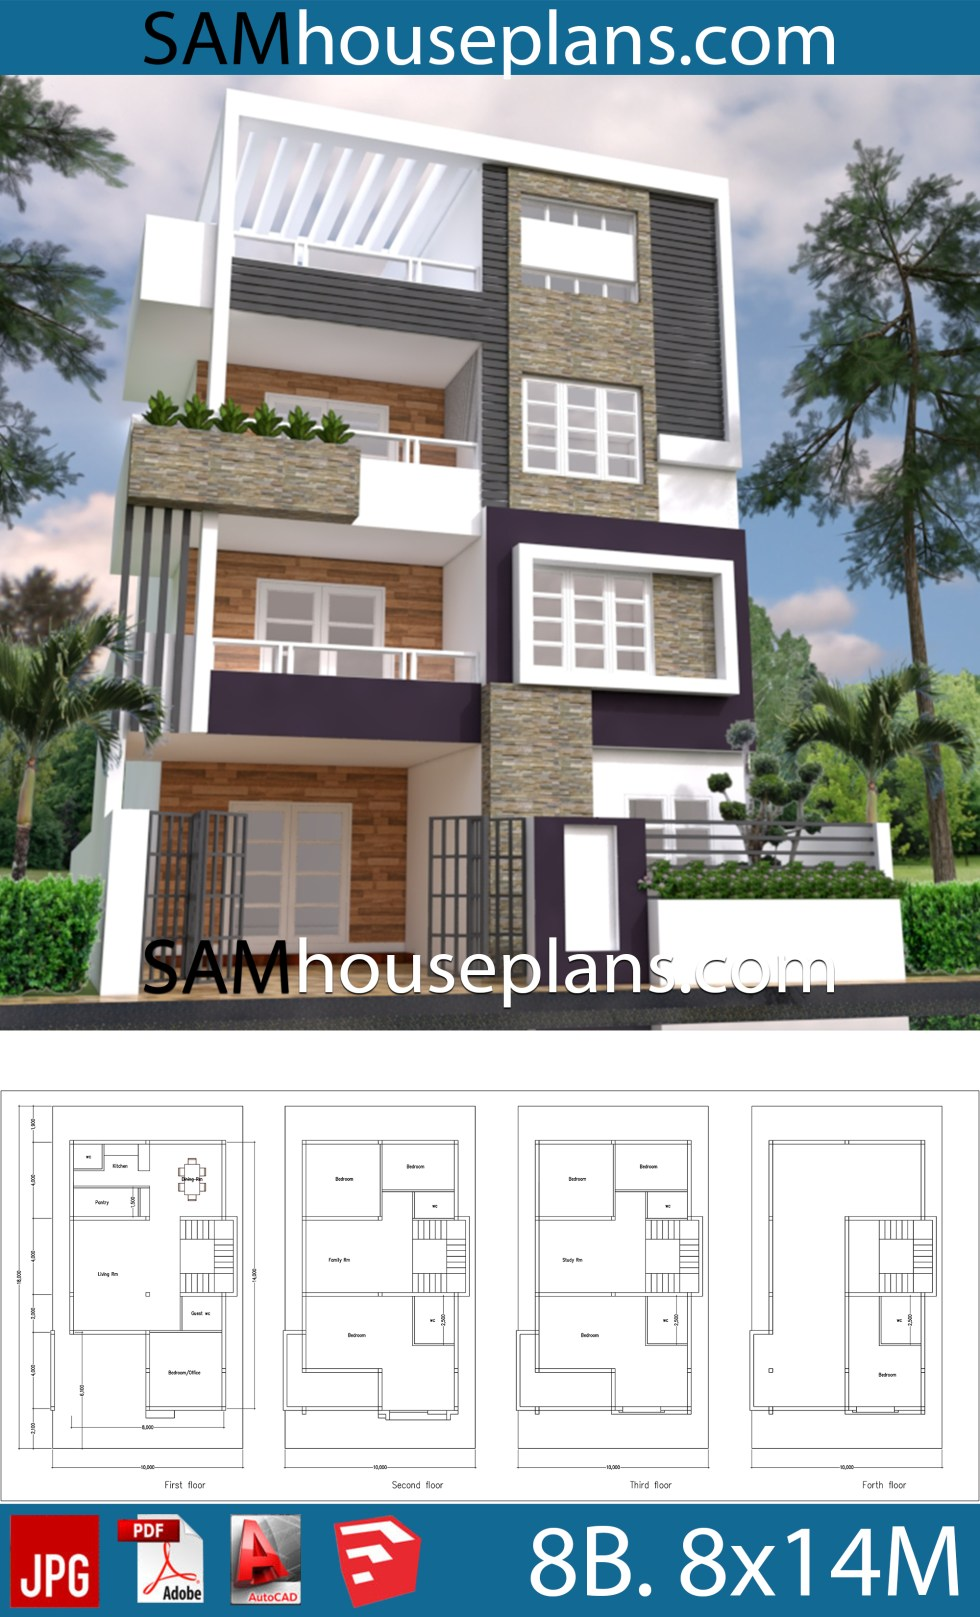 House Plans 8x14 With 8 Bedrooms Samhouseplans